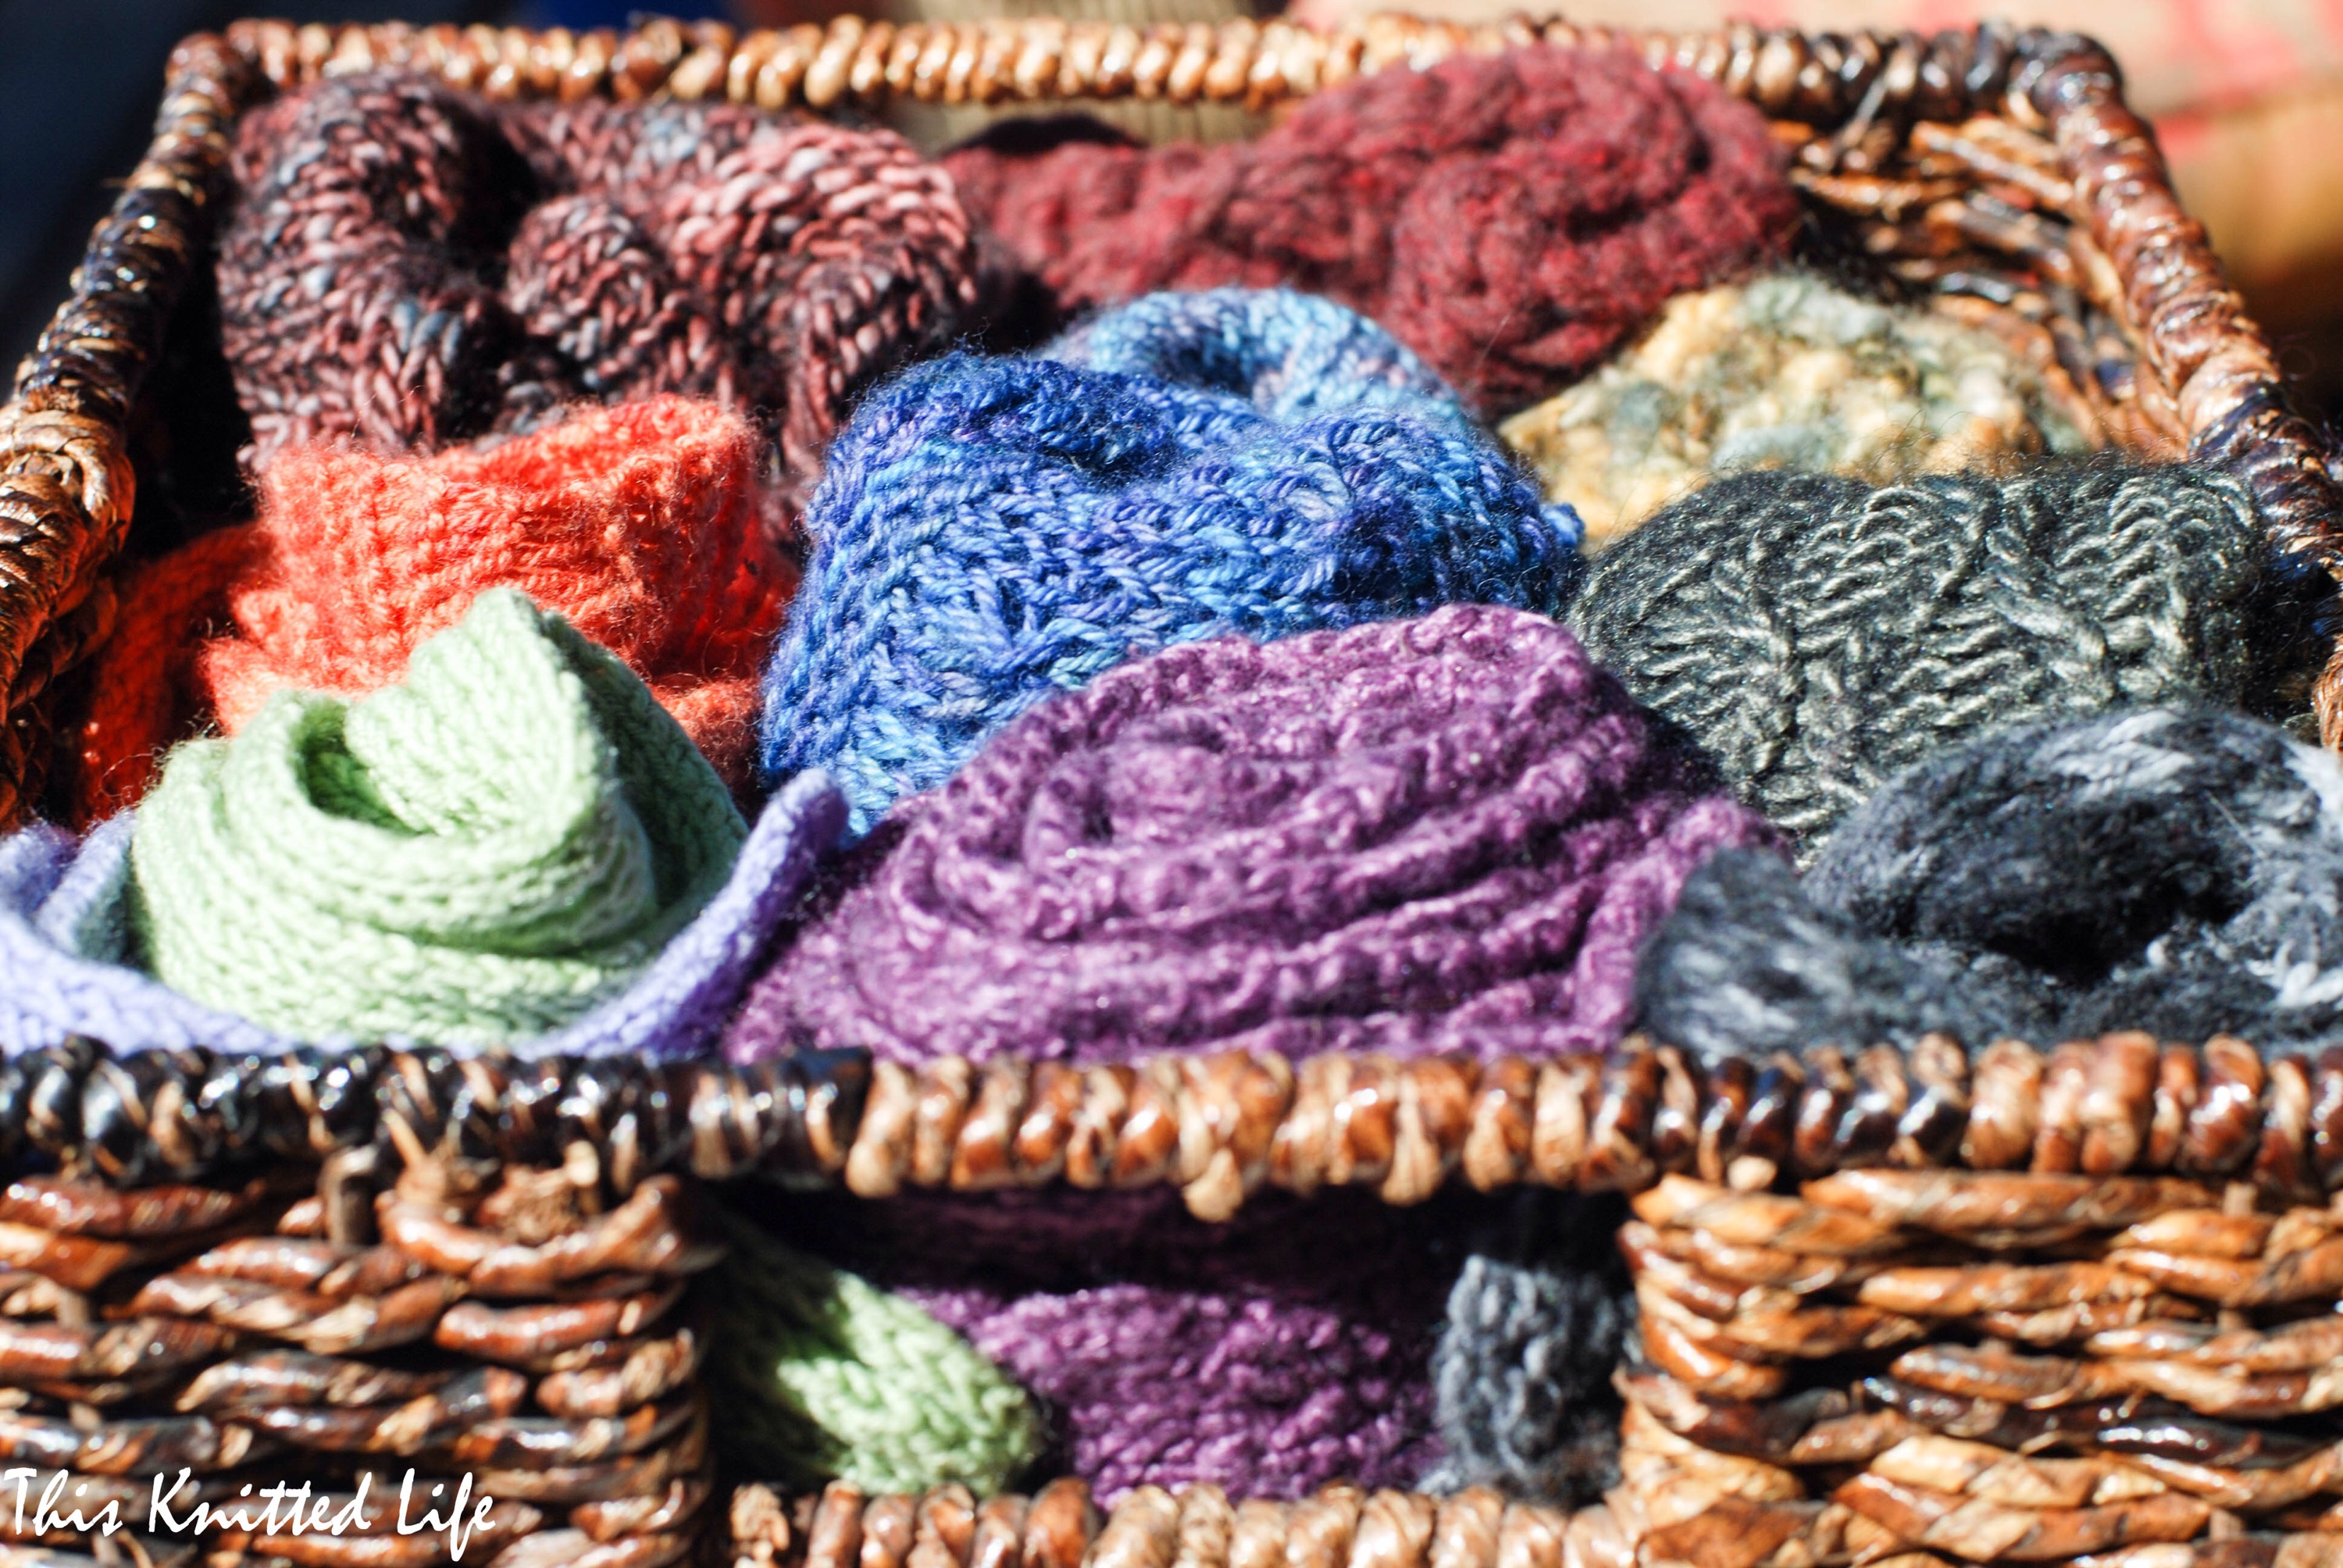 Knitting Supplies Near Me : How i rescued my hand knit accessories this knitted life